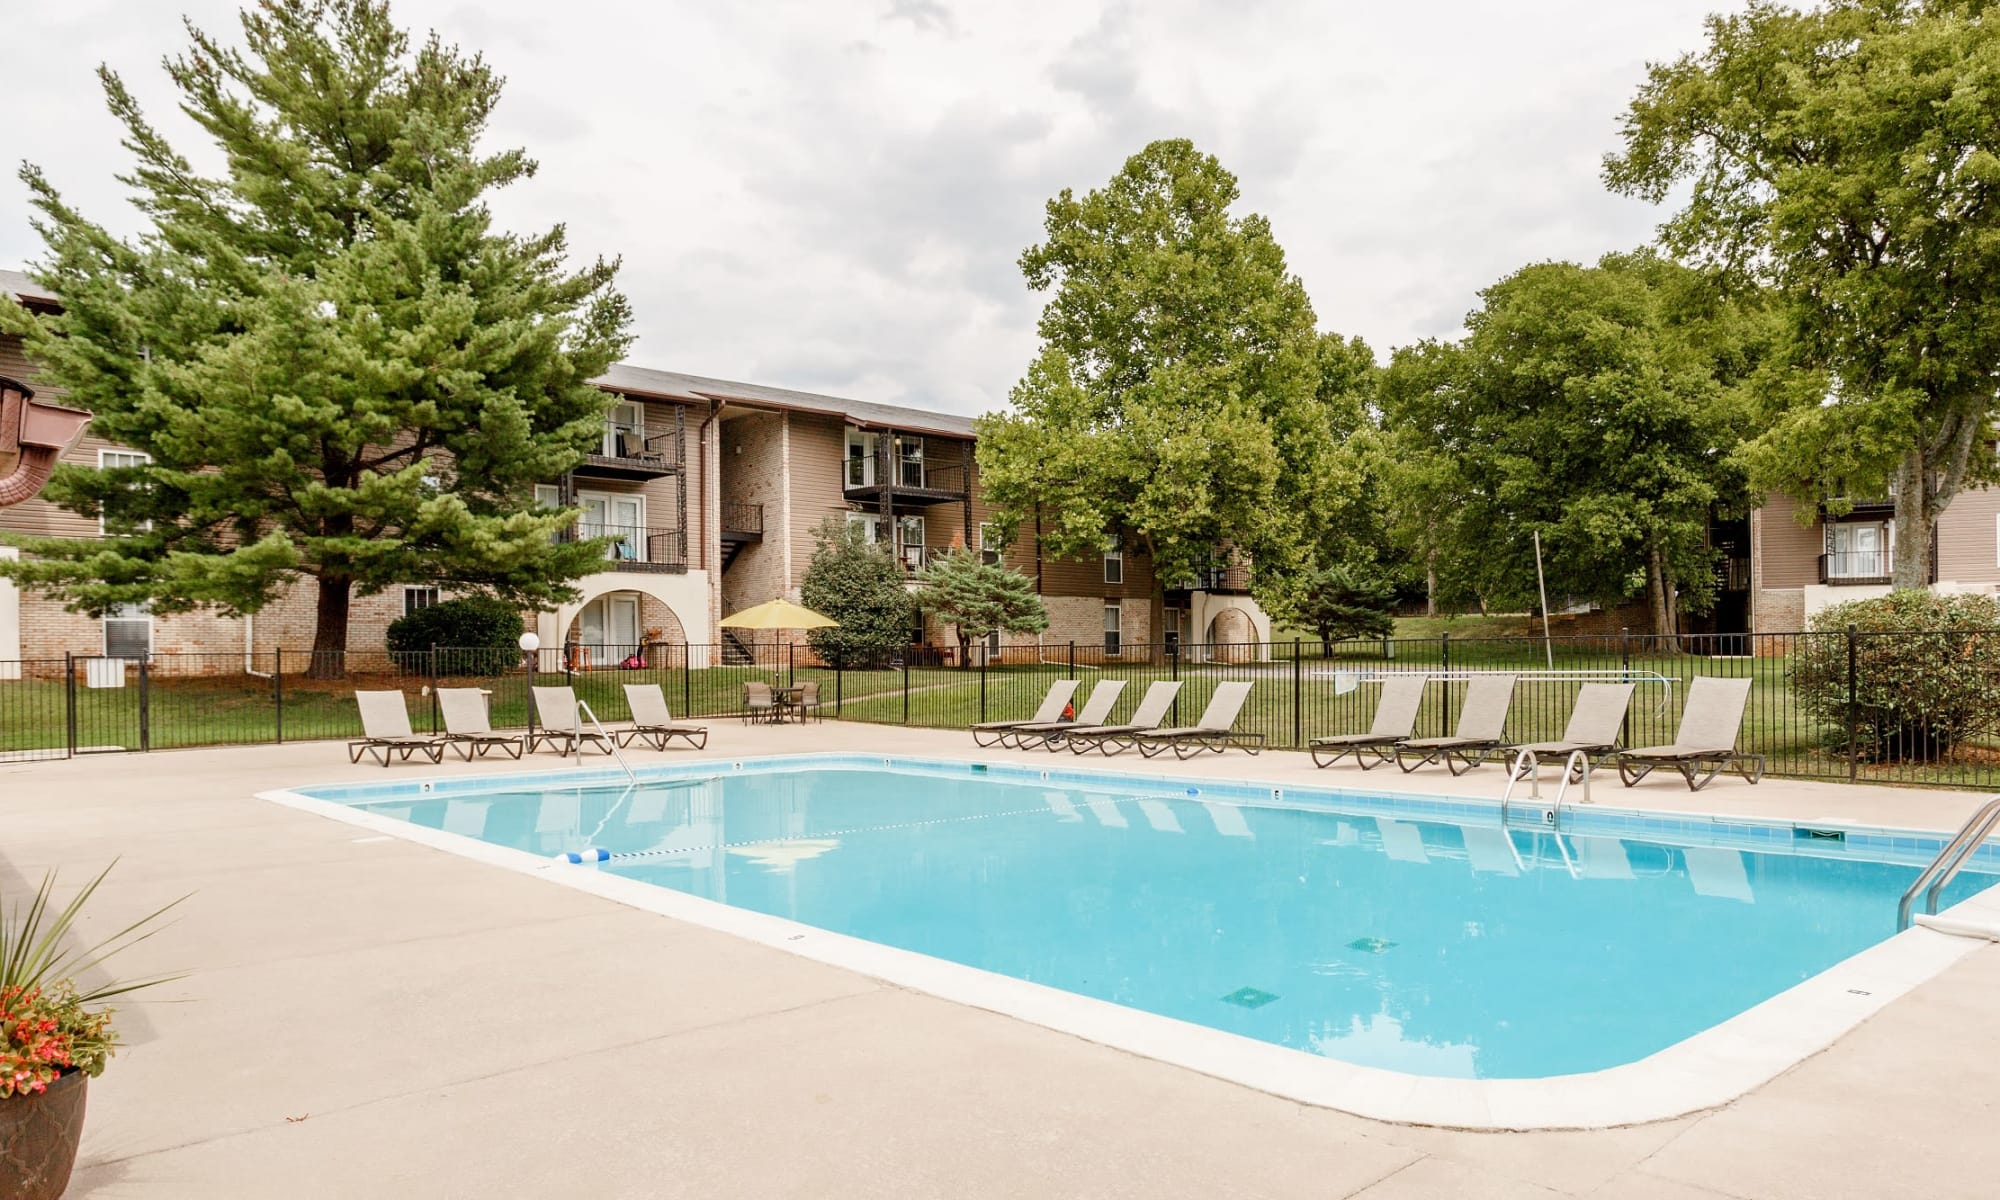 Apartments at The Village at Crestview in Madison, Tennessee